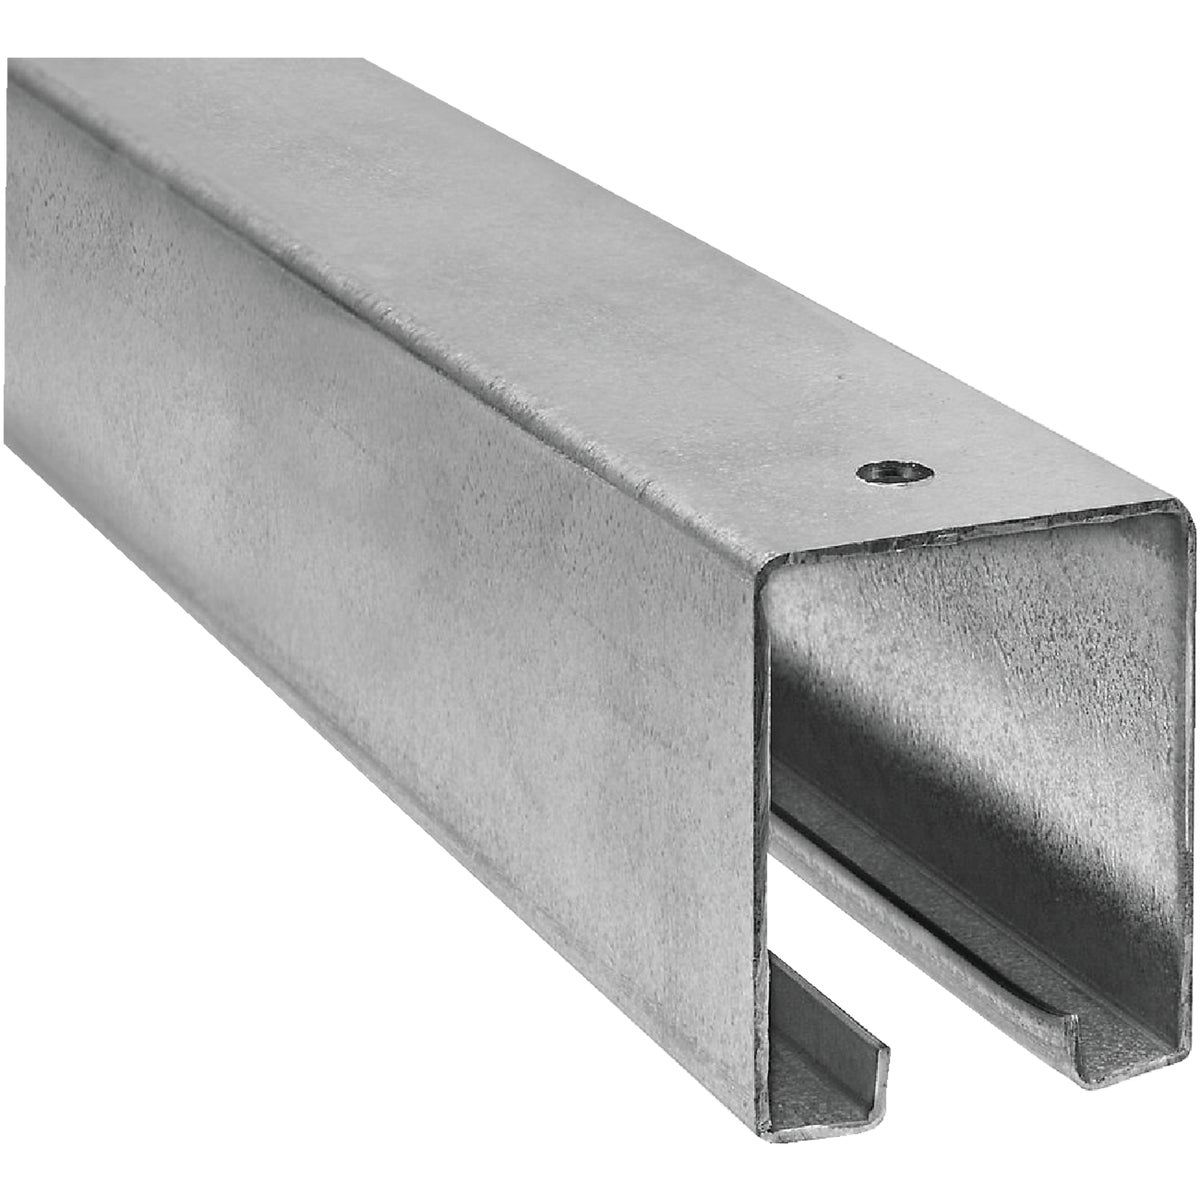 5116 10' GLV DOOR RAIL - N105213 by National Mfg Co